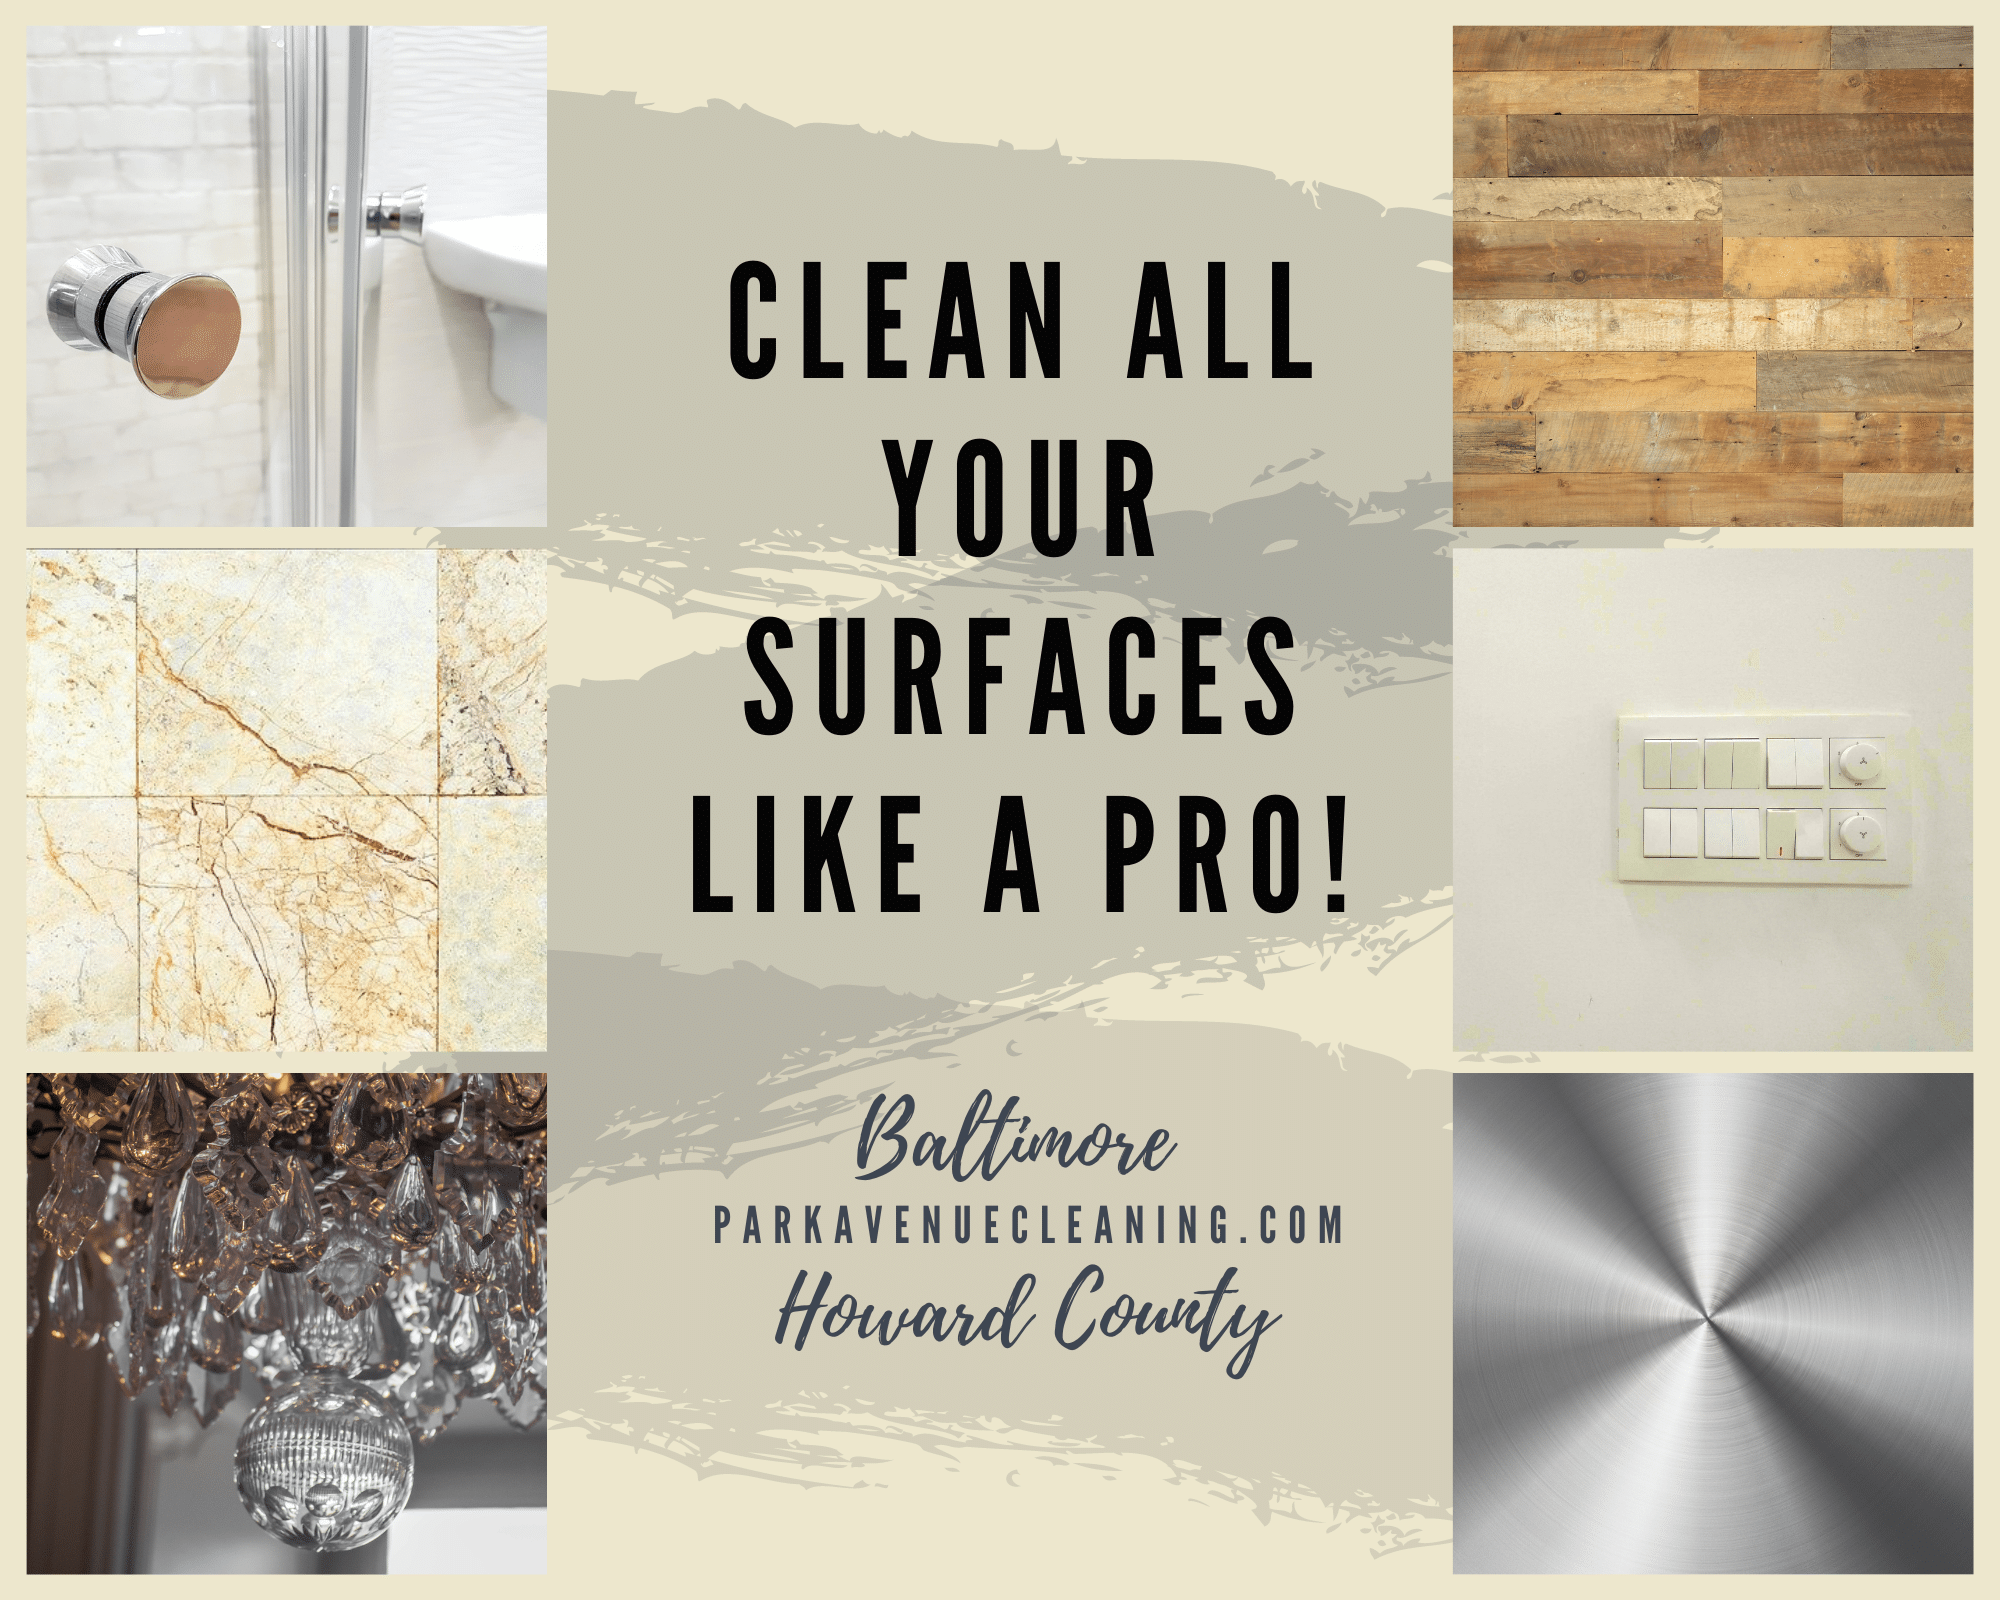 photo-collage-multiple-building-materials-clean-surfaces-like-a-pro-how-to-clean-article